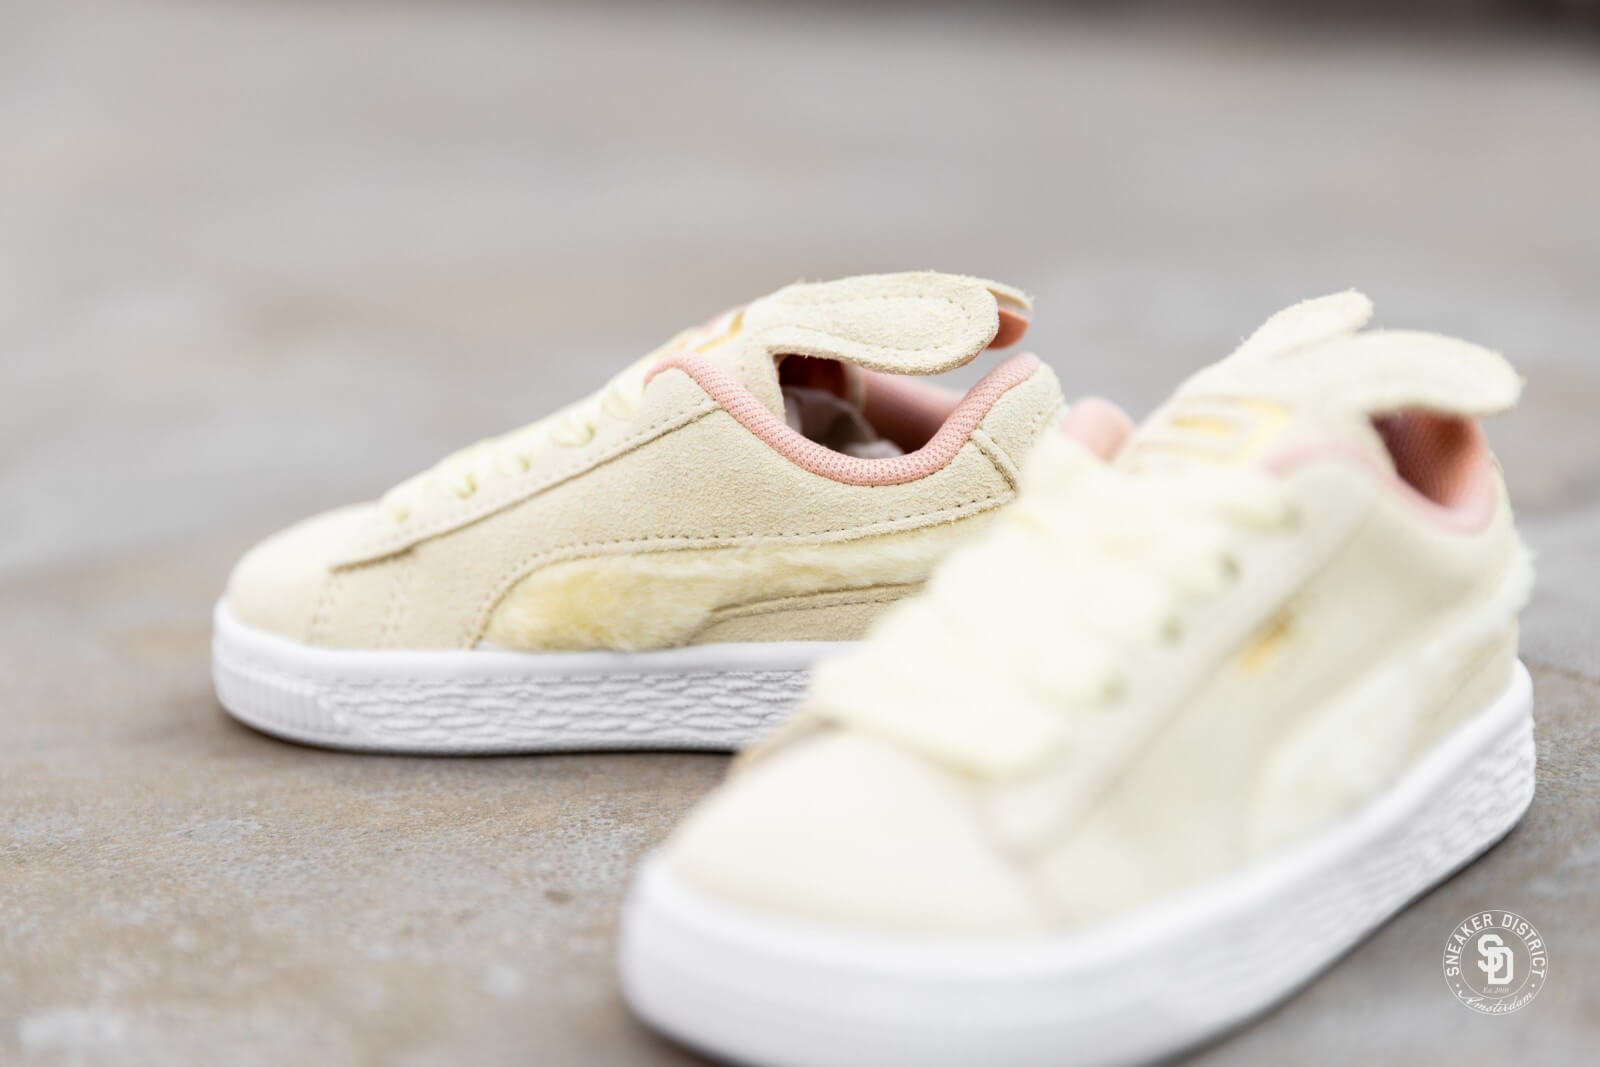 Puma Suede Easter AC Infant YellowCoral Cloud Gold 36894601